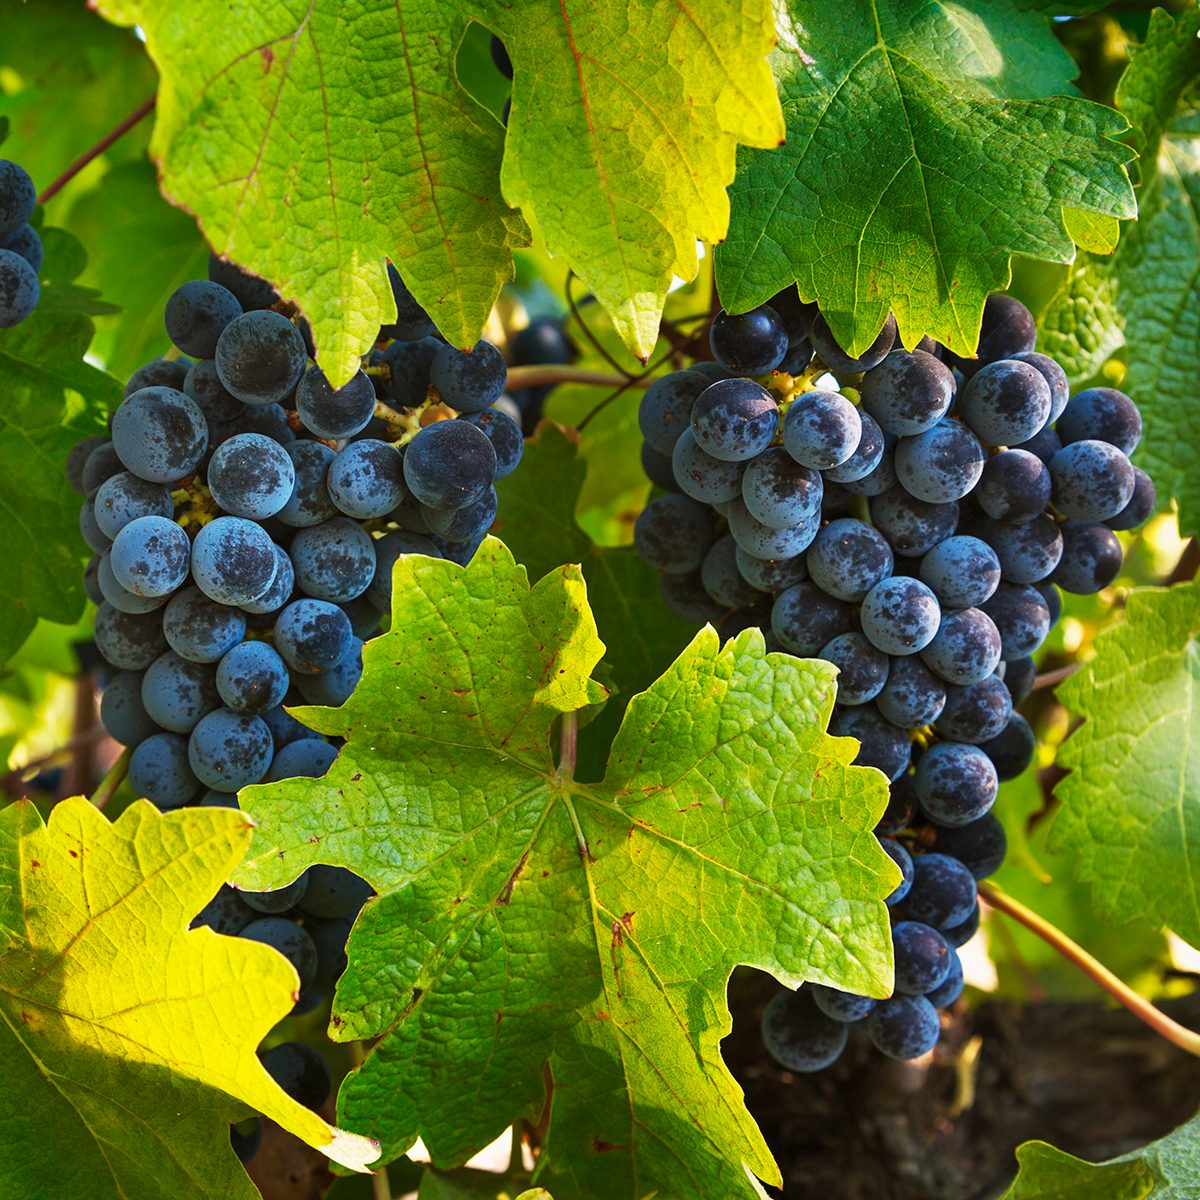 Close-up of grapes on the vine in California wine country.